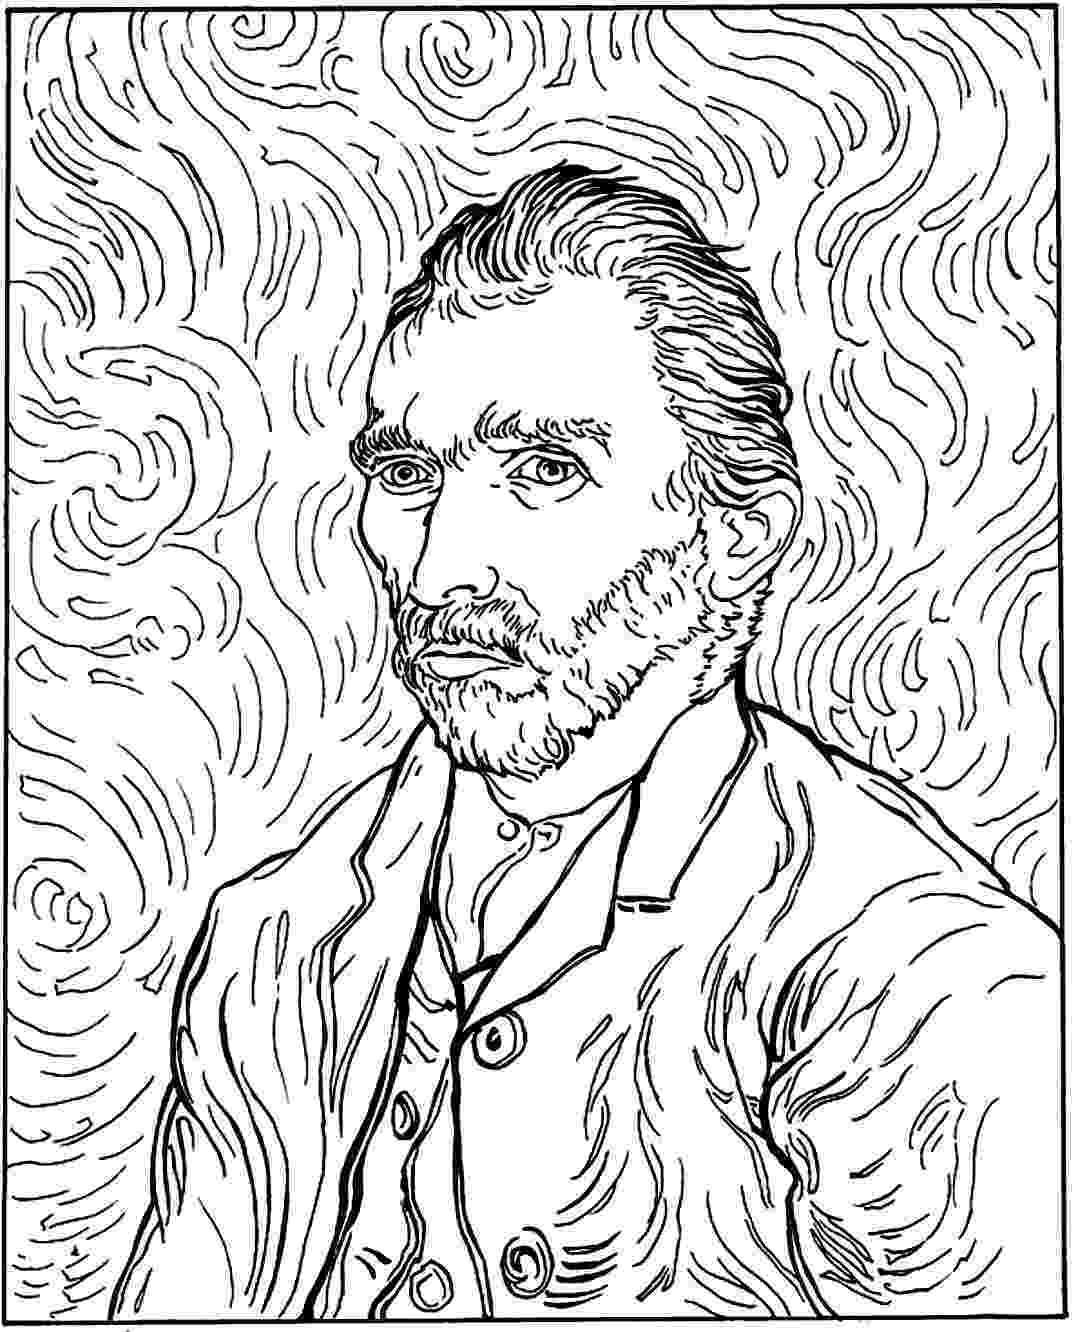 famous artists for kids coloring pages free coloring page coloring adult van gogh autoportrait famous for coloring pages artists kids